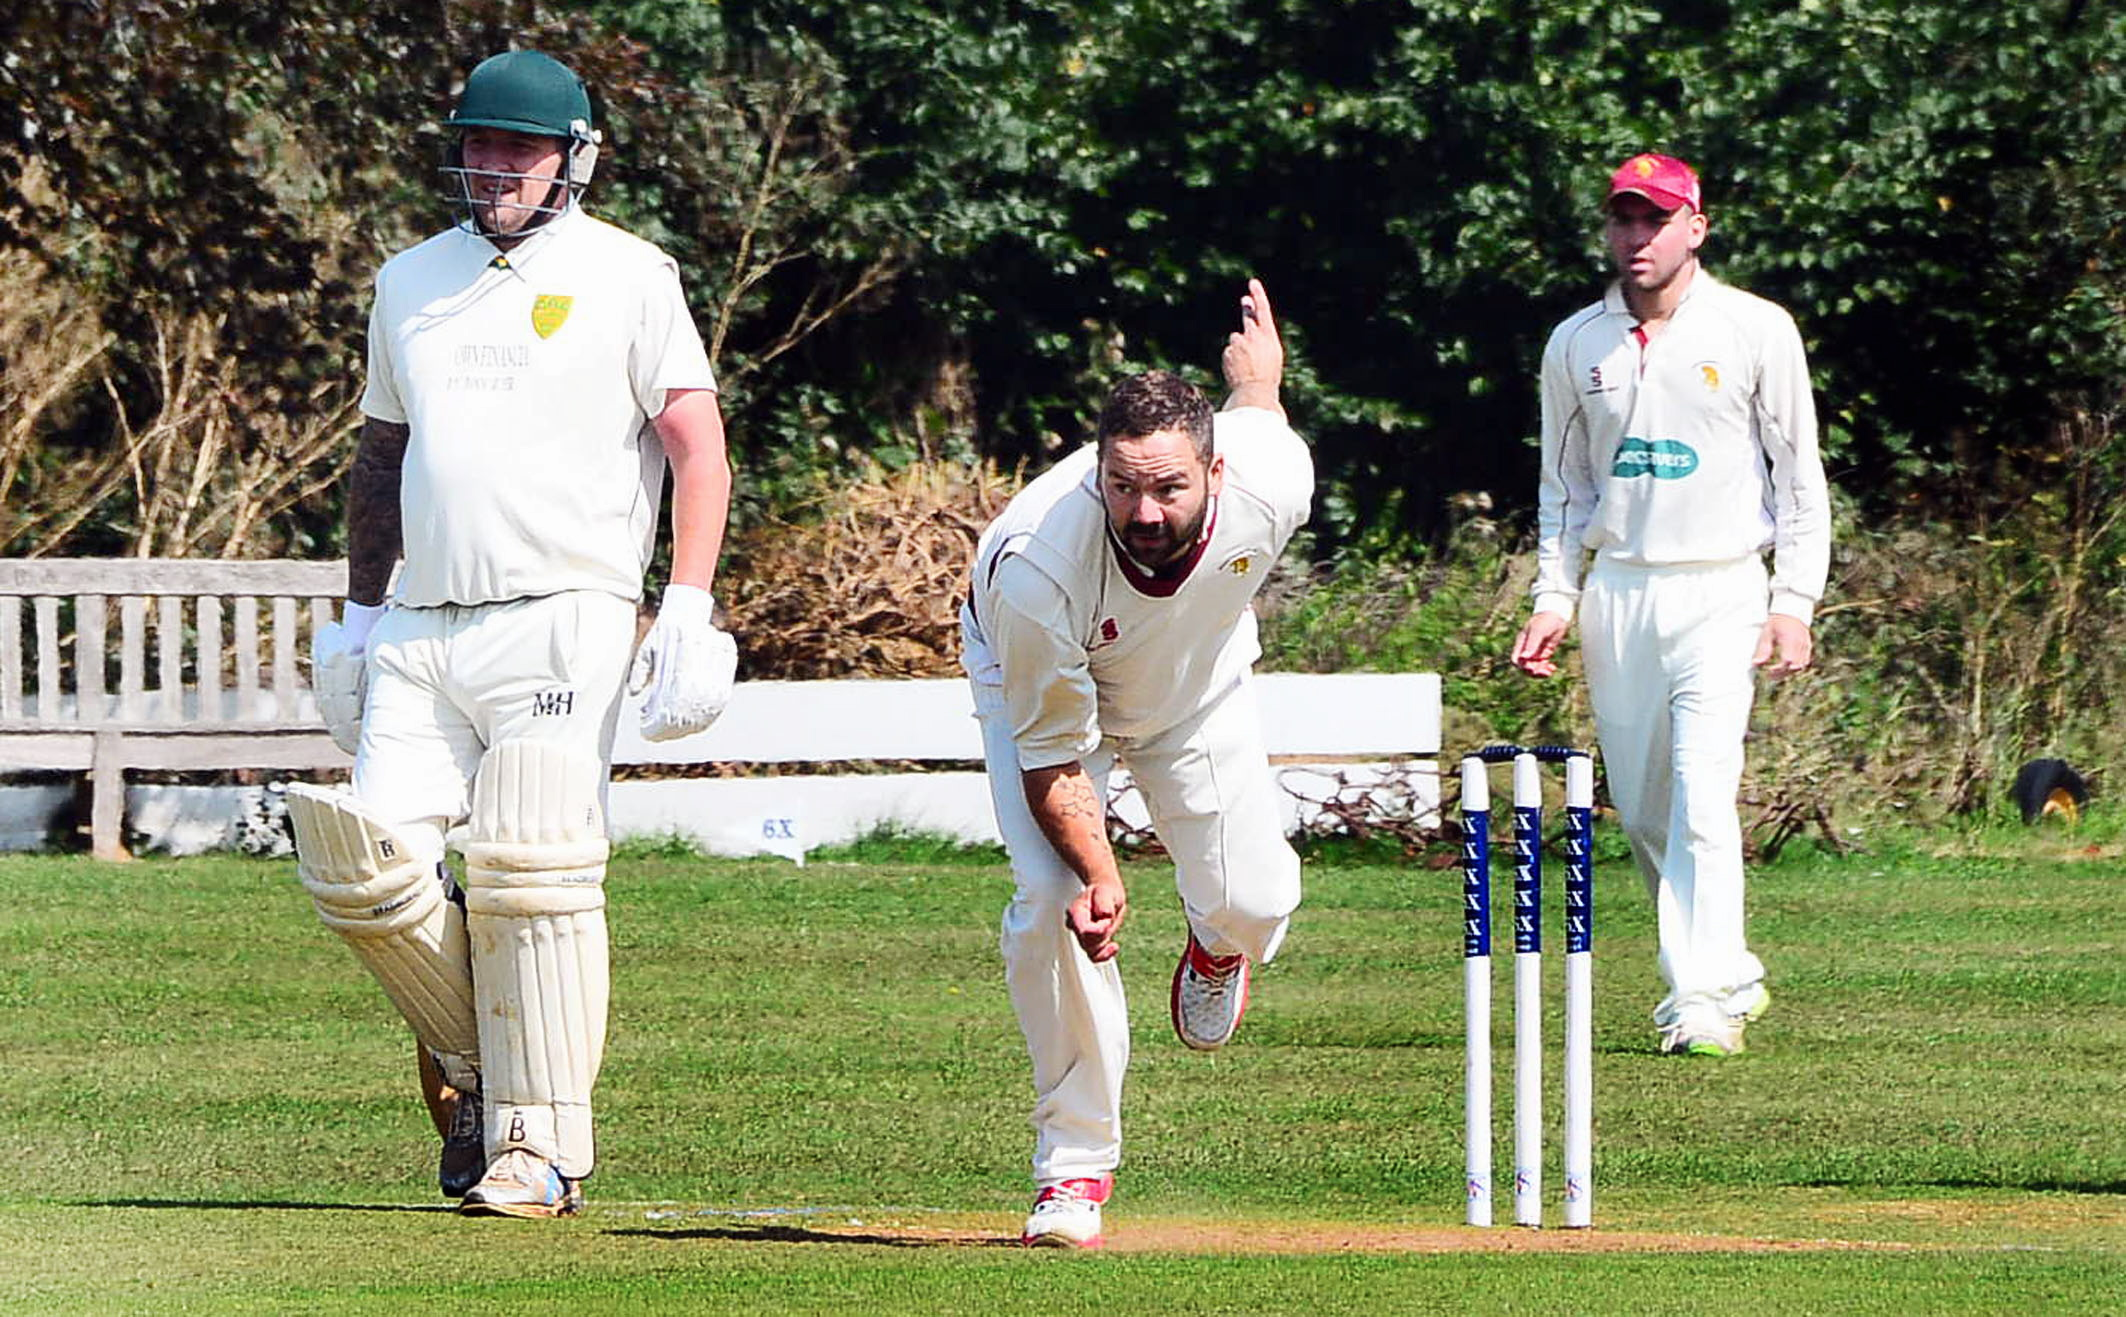 WICKETS: Stacy Hawes on his way to 3-16 for North Perrott against Staplegrove. Pic: Steve Richardson